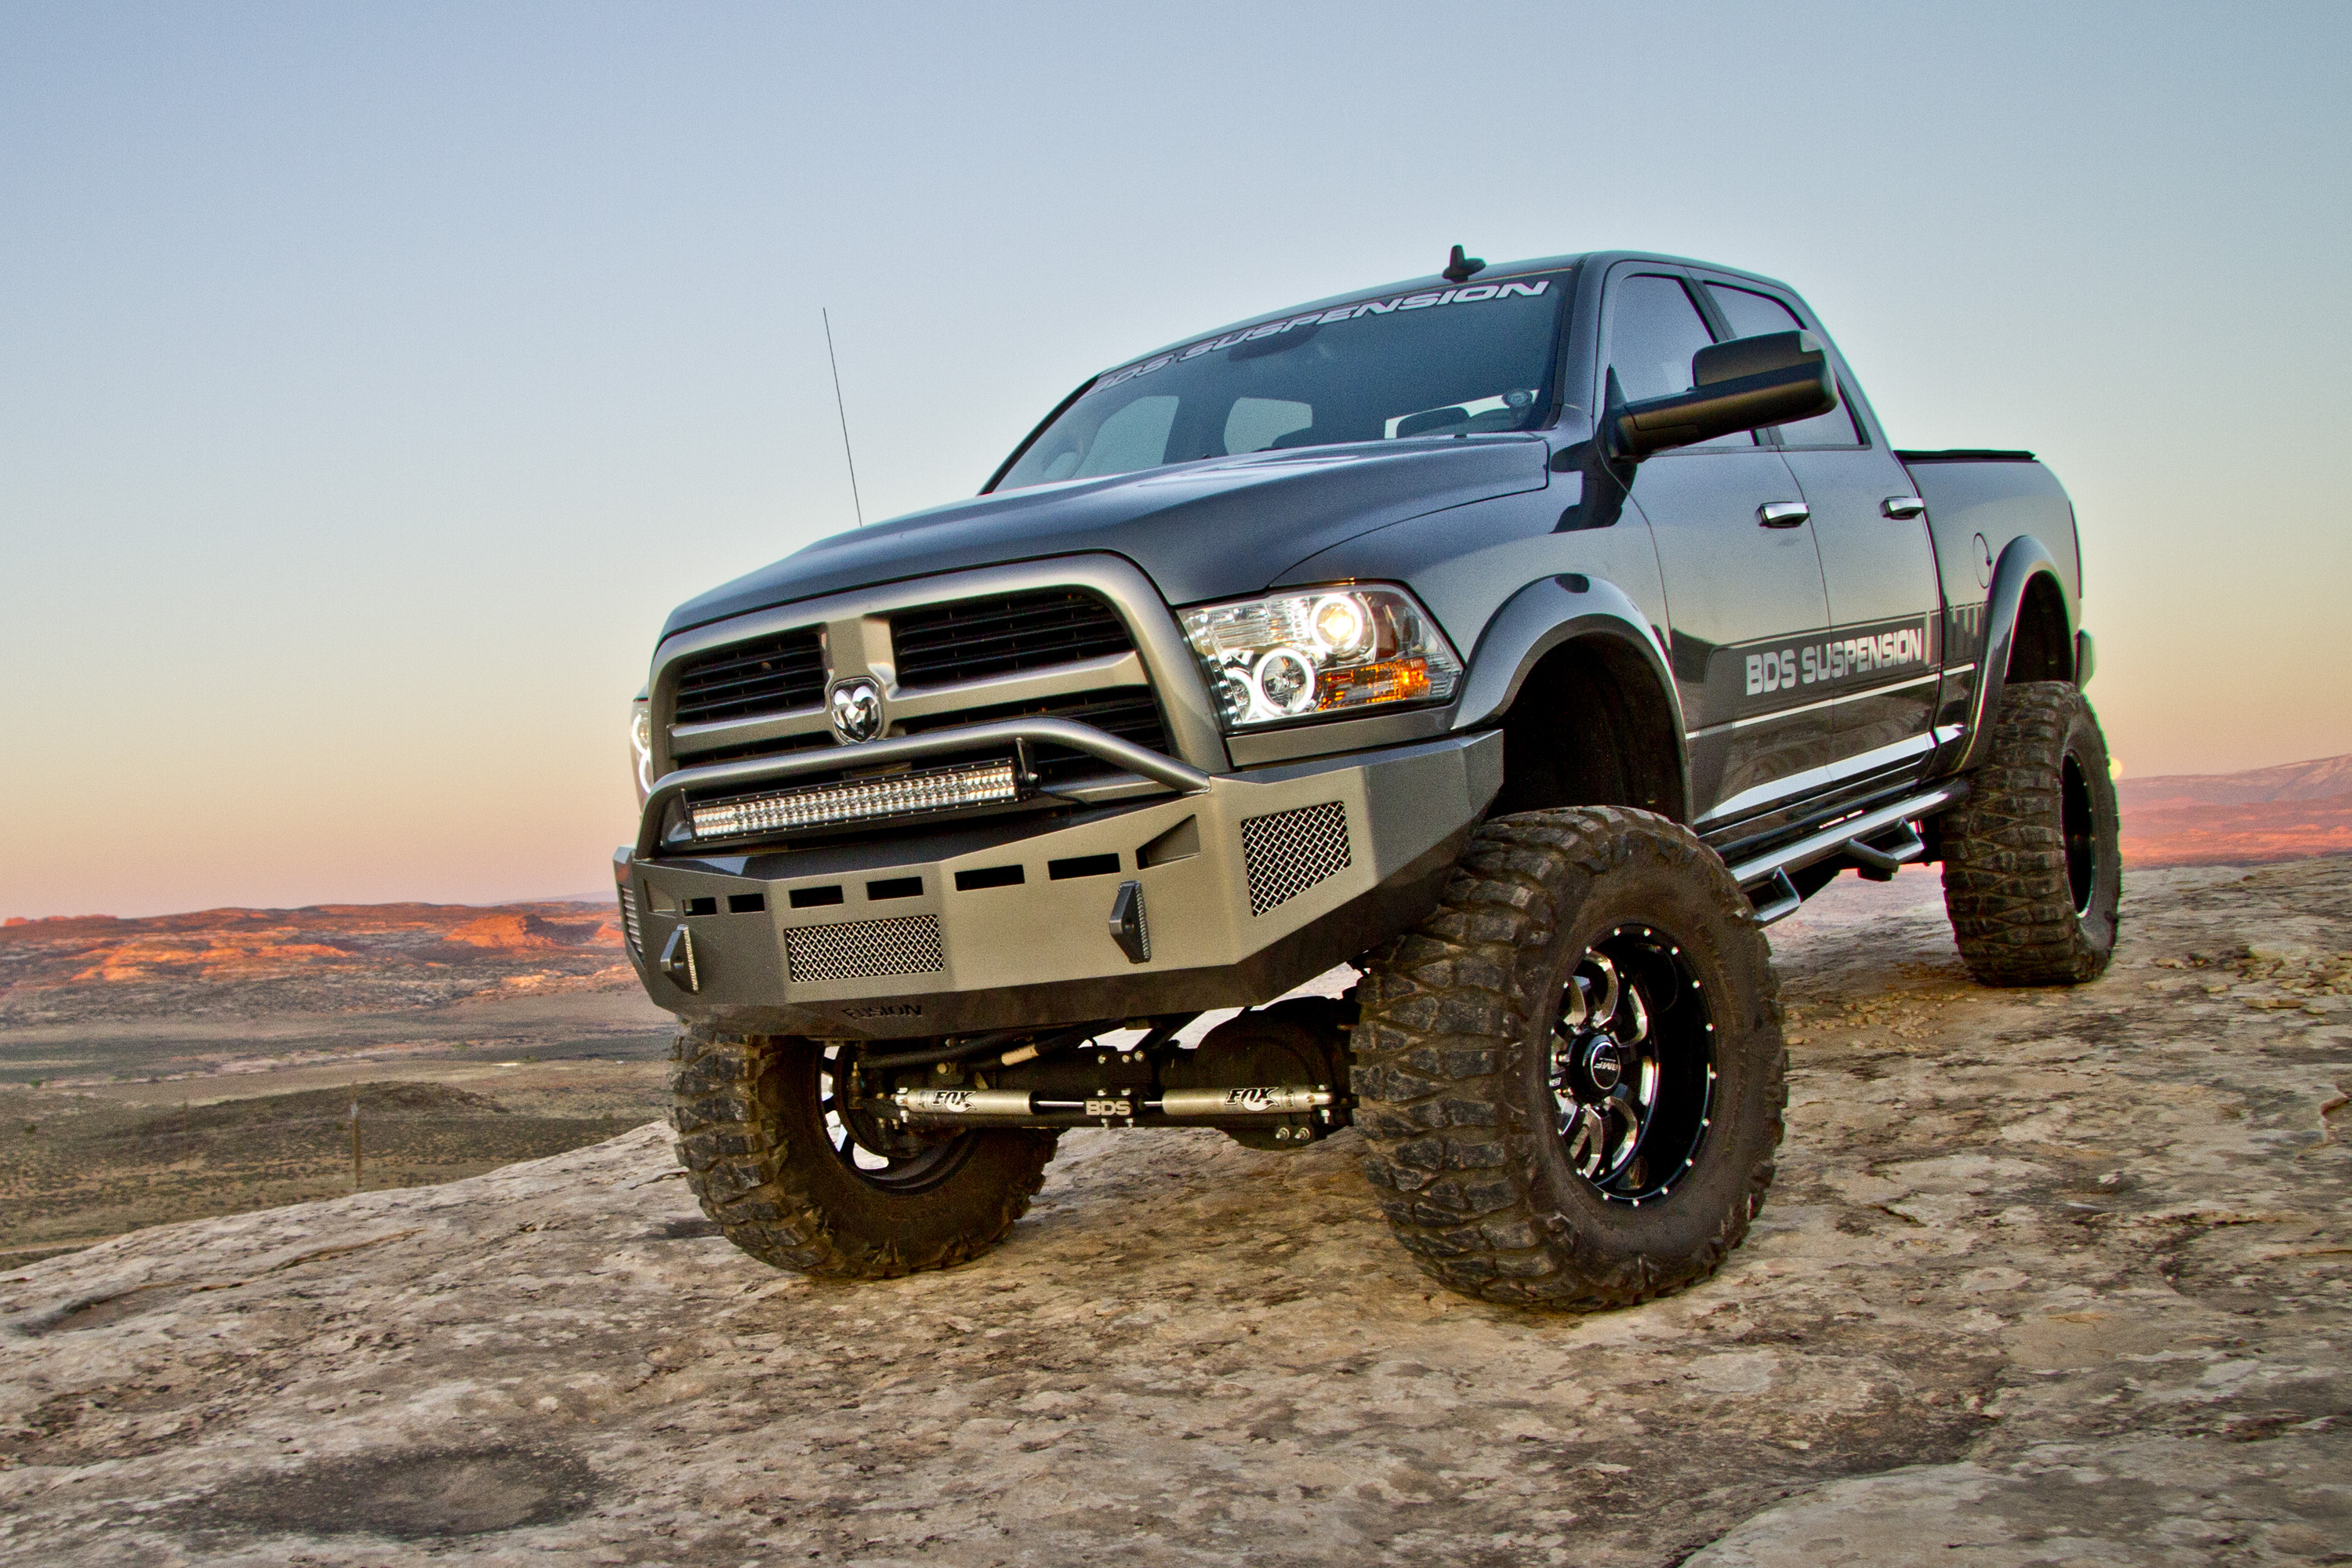 ram 3500 w 8 lift kit on 40s hires image project slate - Dodge Truck 2015 Lifted